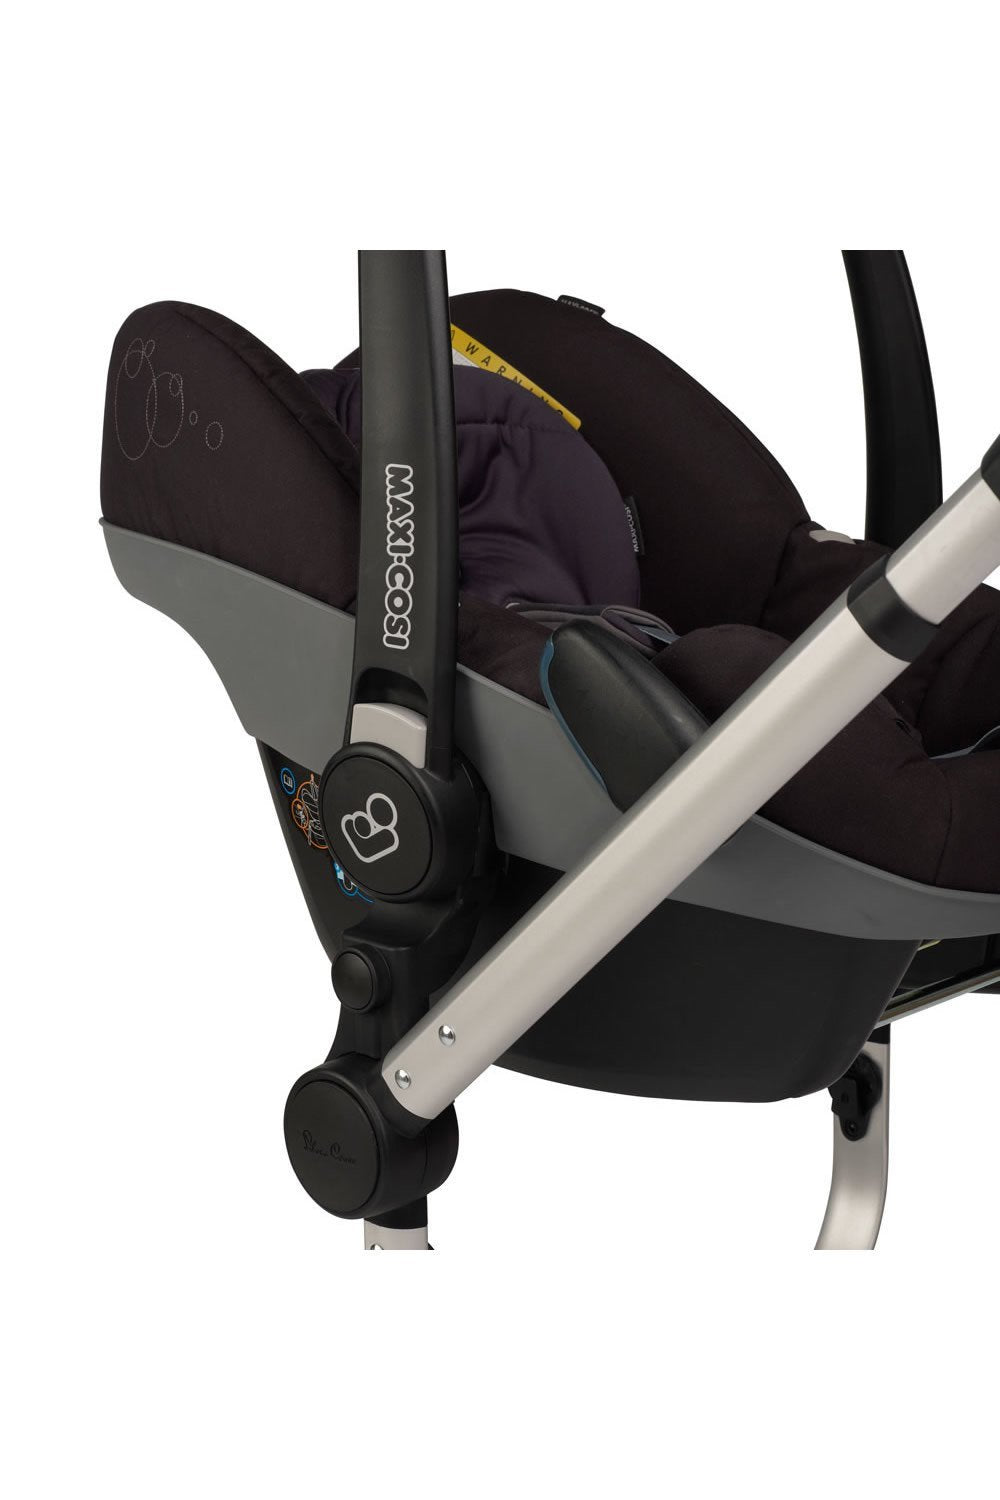 Surf  adaptor for Maxi Cosi and Nuna Pippa capsules